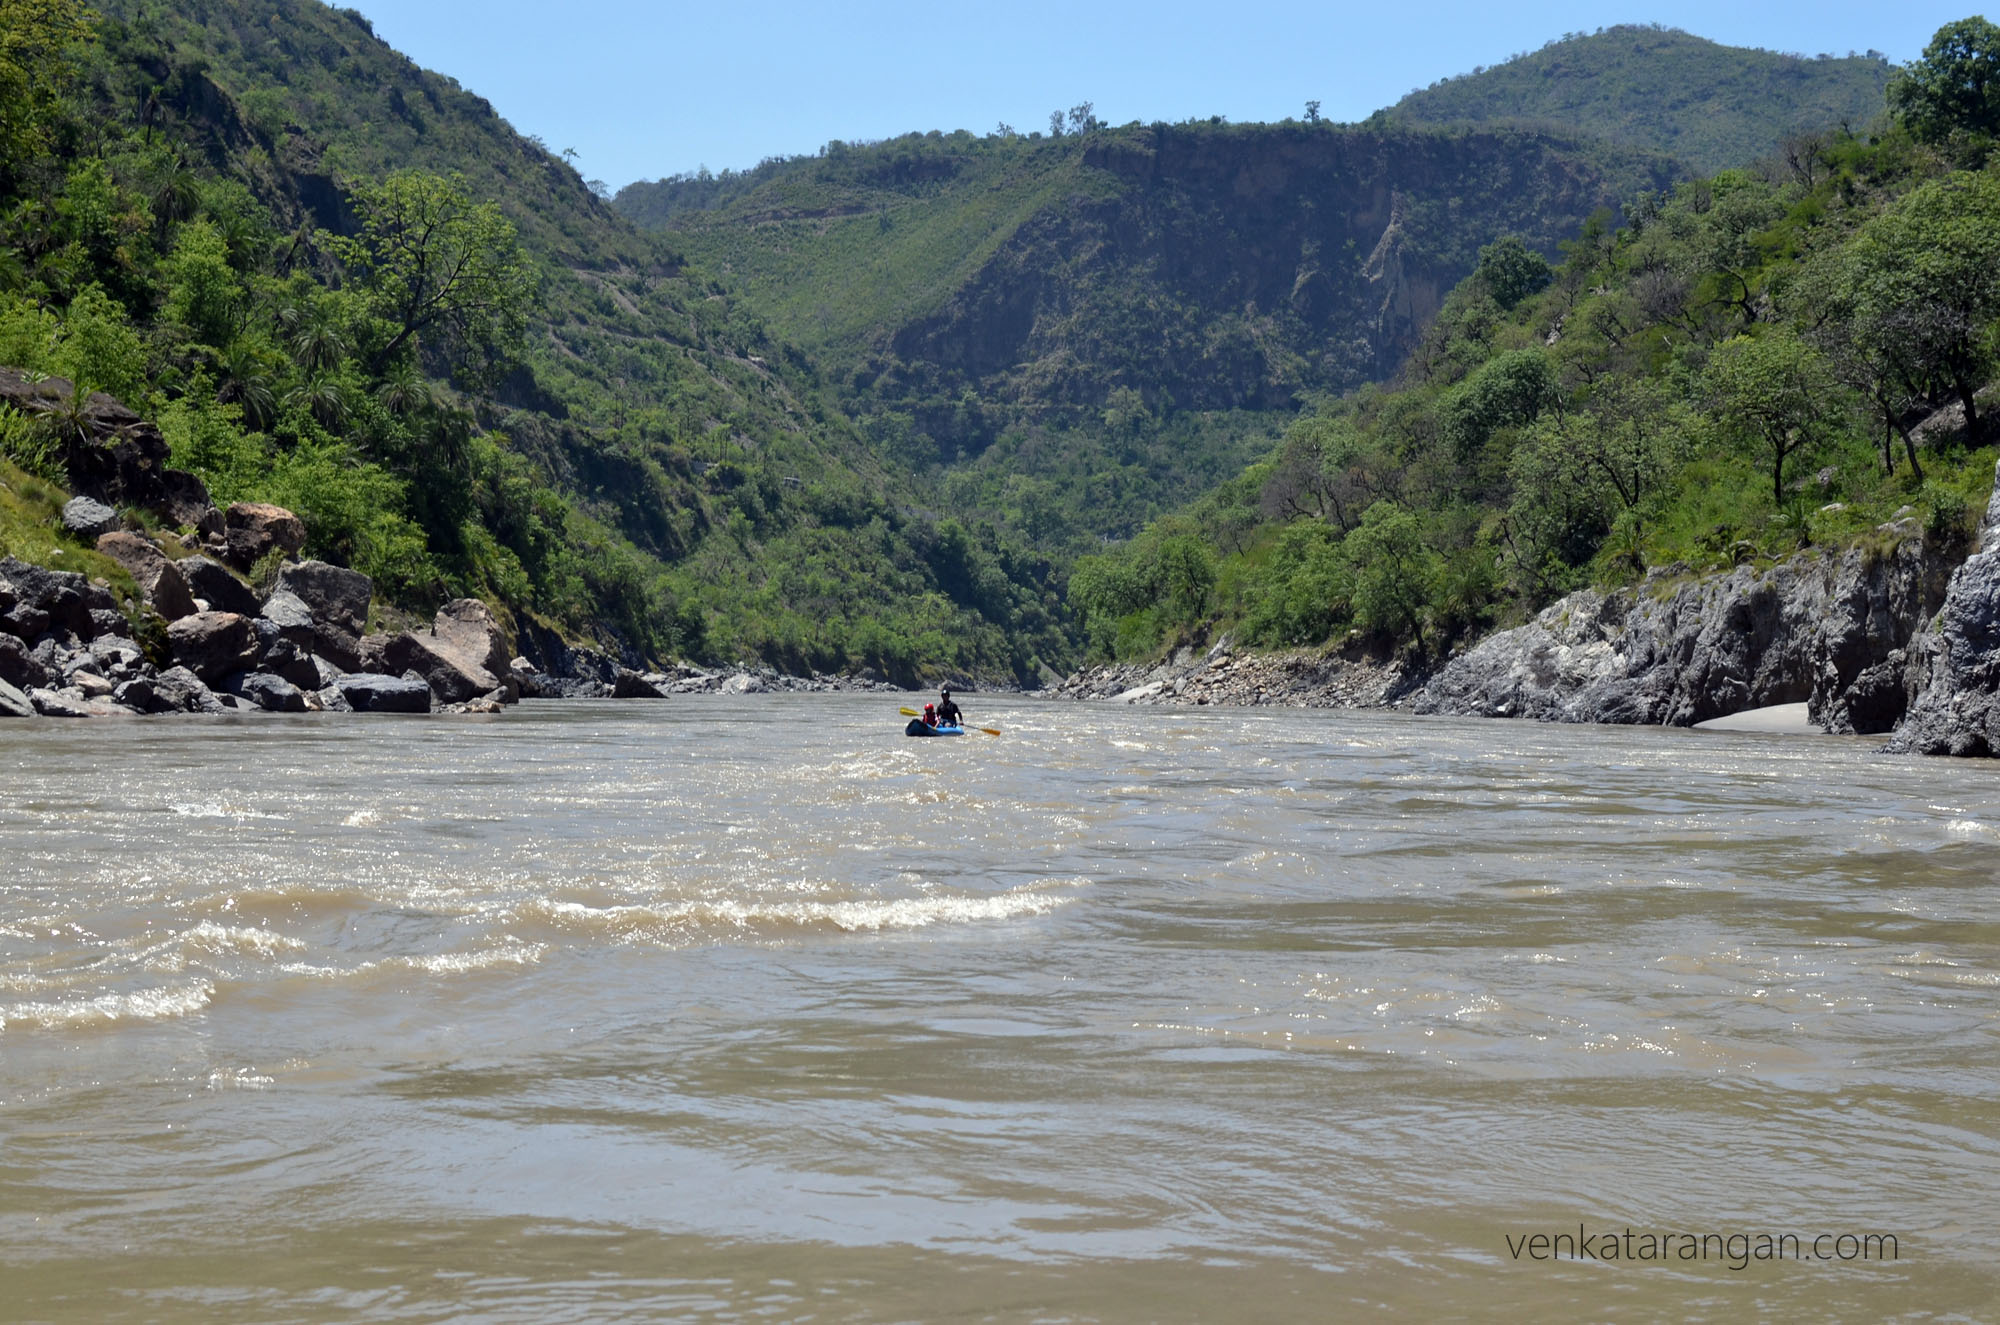 Rafting on banana boat in River Sutlej